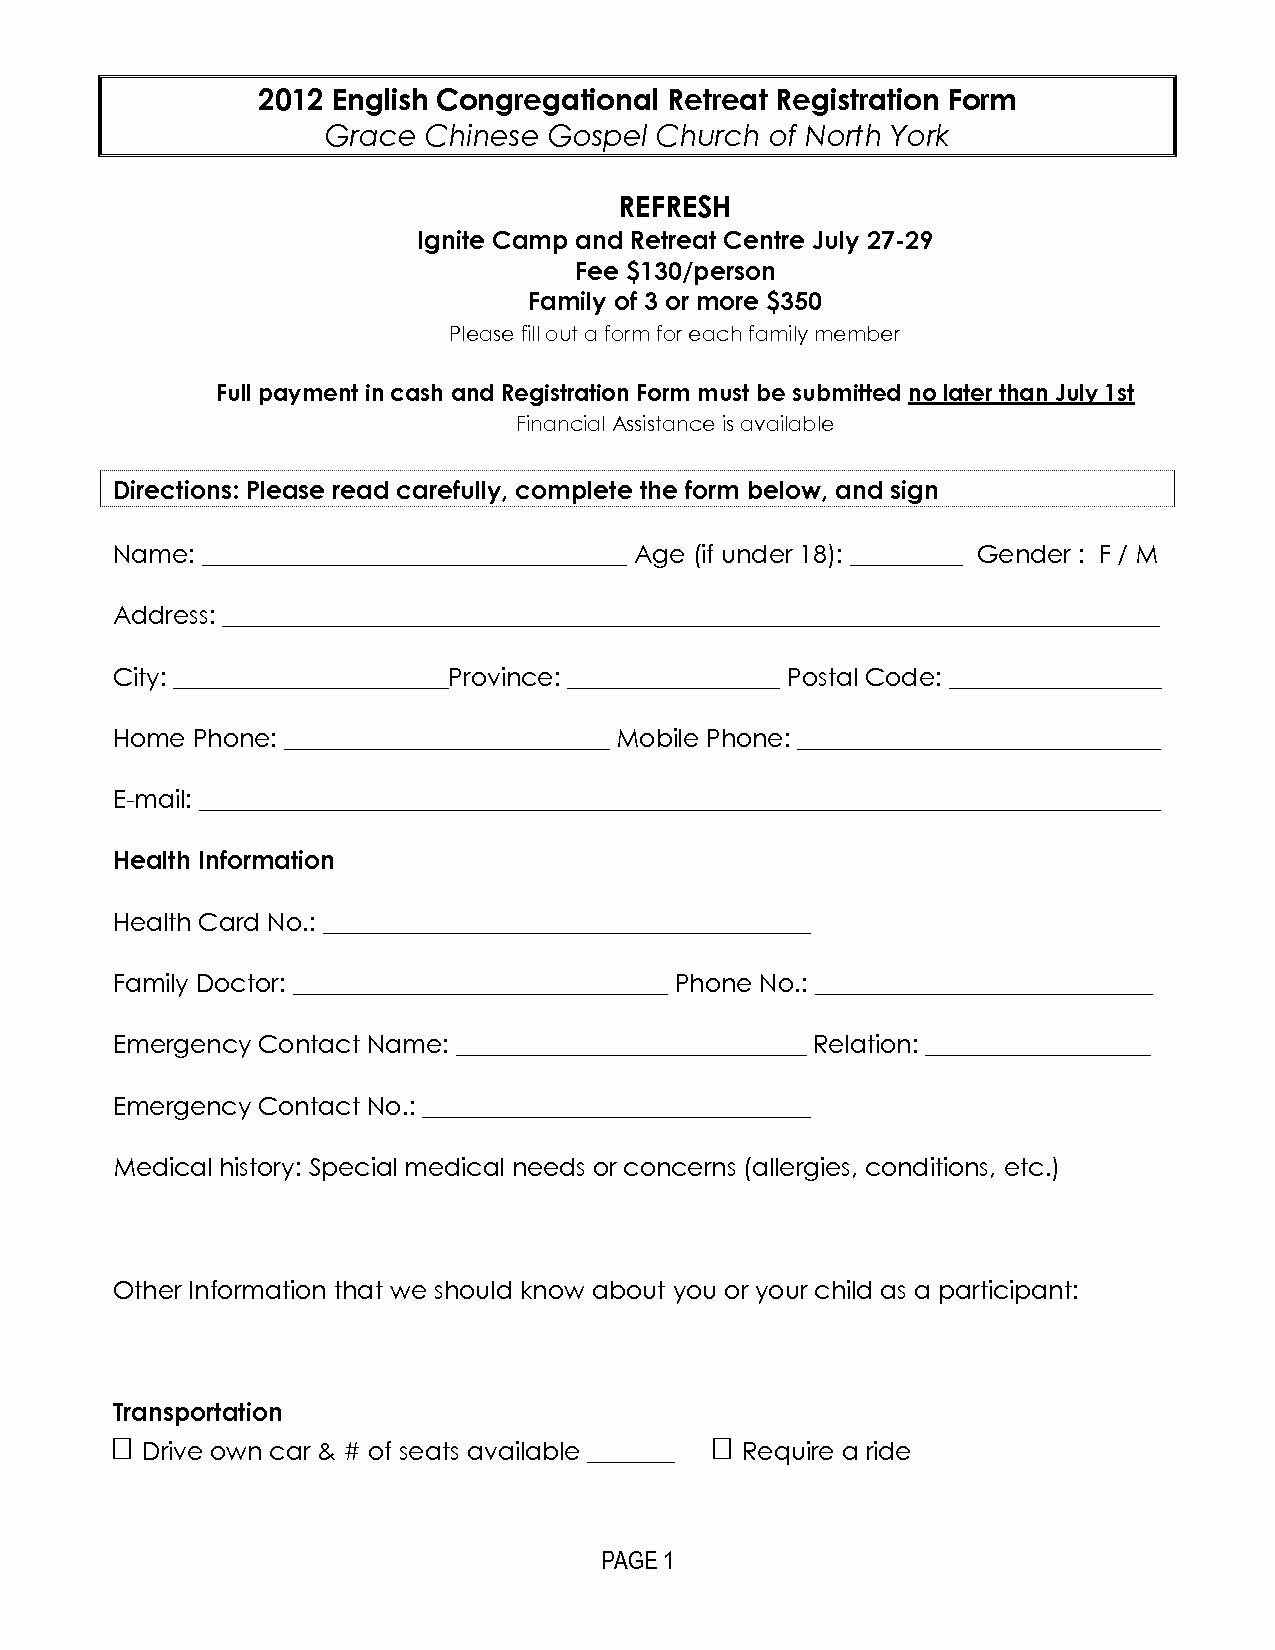 Camp Registration form Template Word Fresh Retreat Registration forms